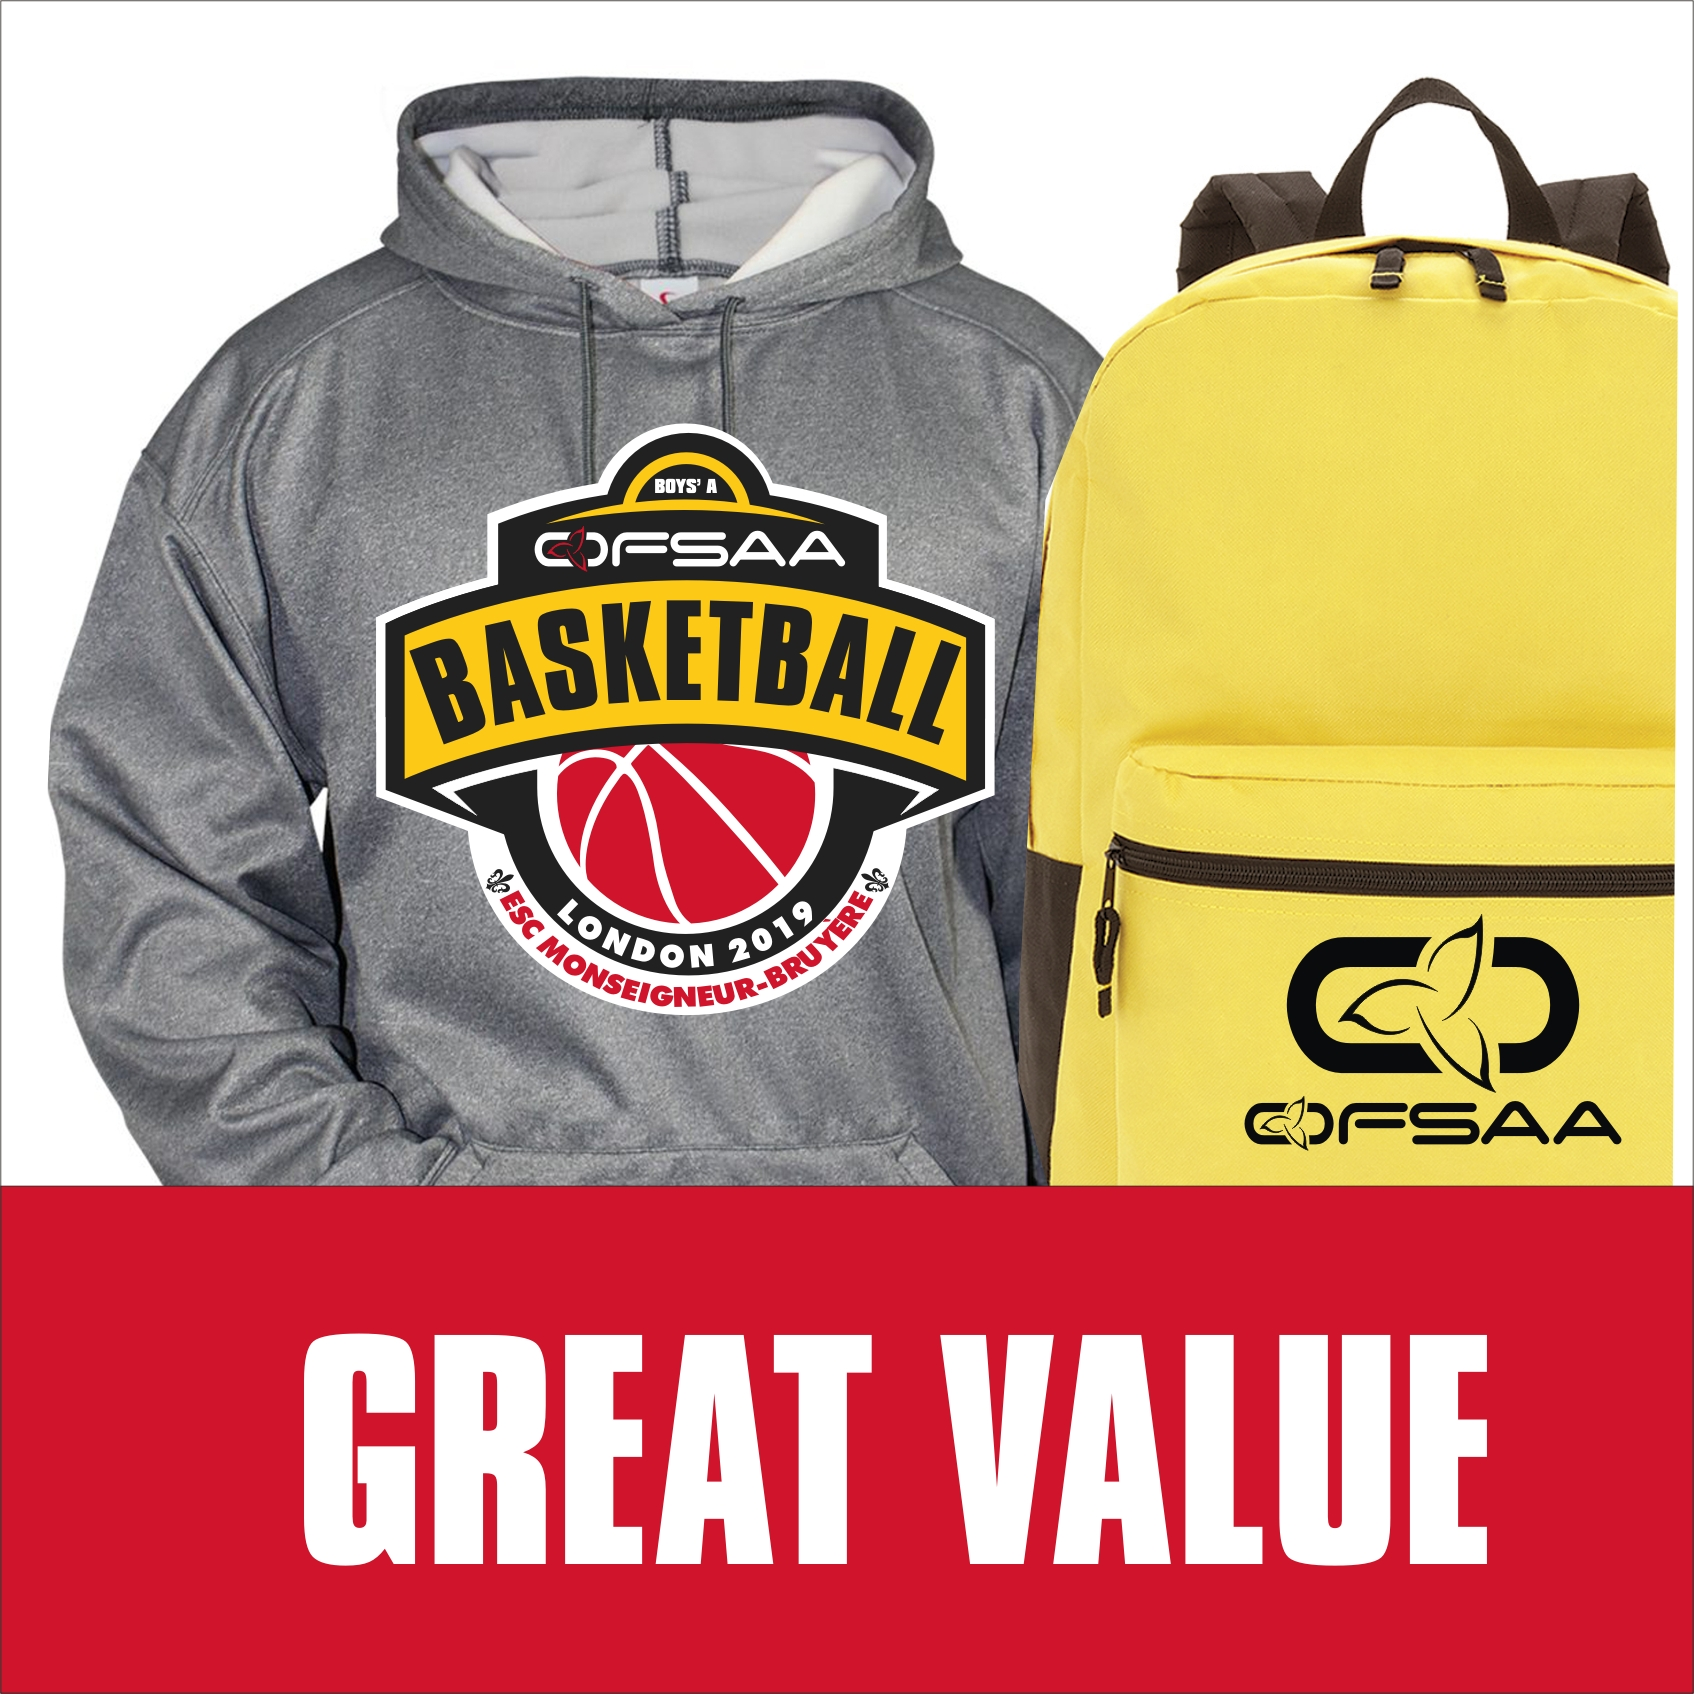 2019 Boys A Basketball Hoodie bag bundle.jpg